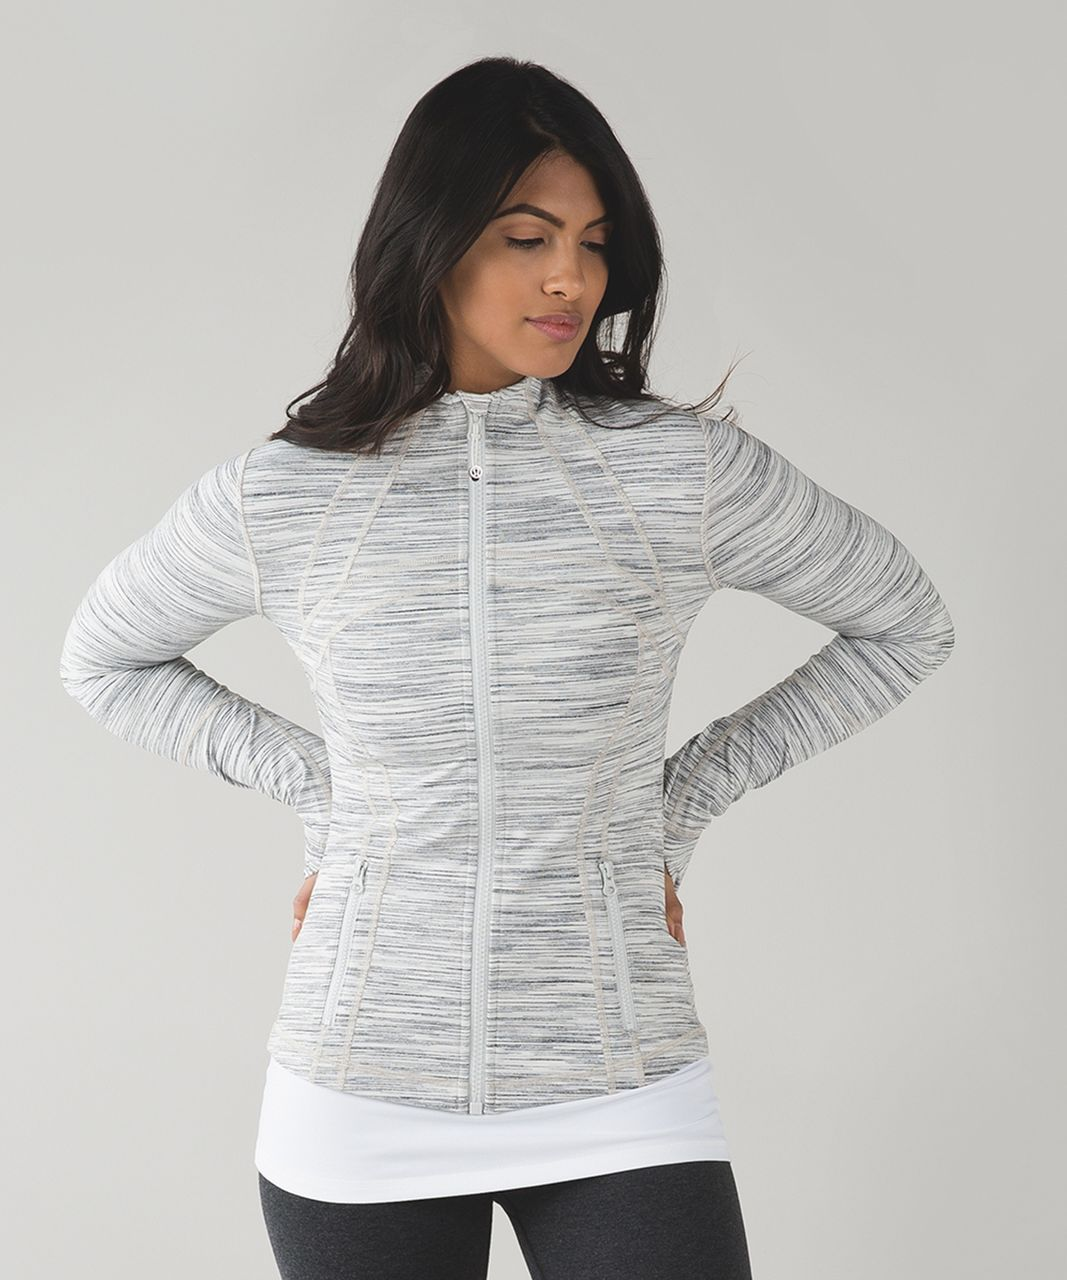 Lululemon Define Jacket - Space Dye Camo White Silver Spoon